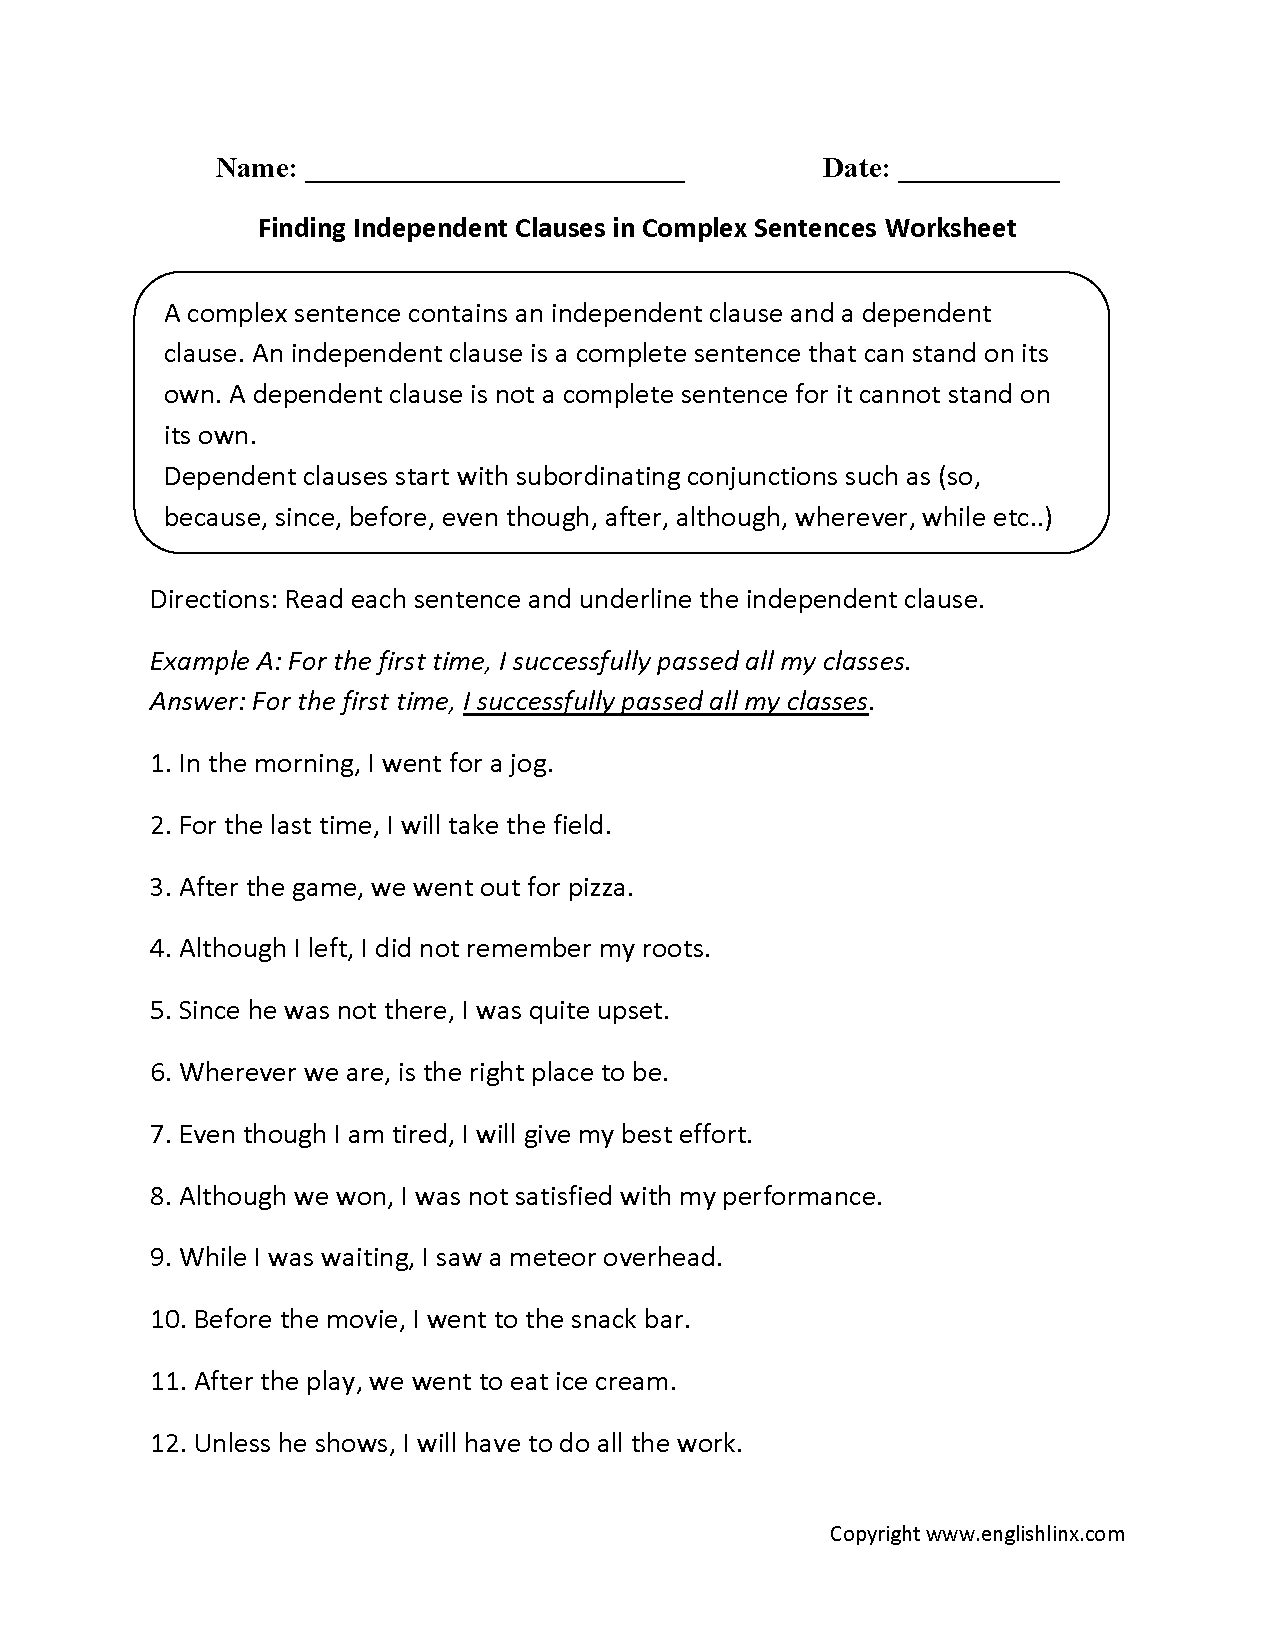 worksheet Simple Compound And Complex Sentences Worksheets sentences worksheets complex worksheets